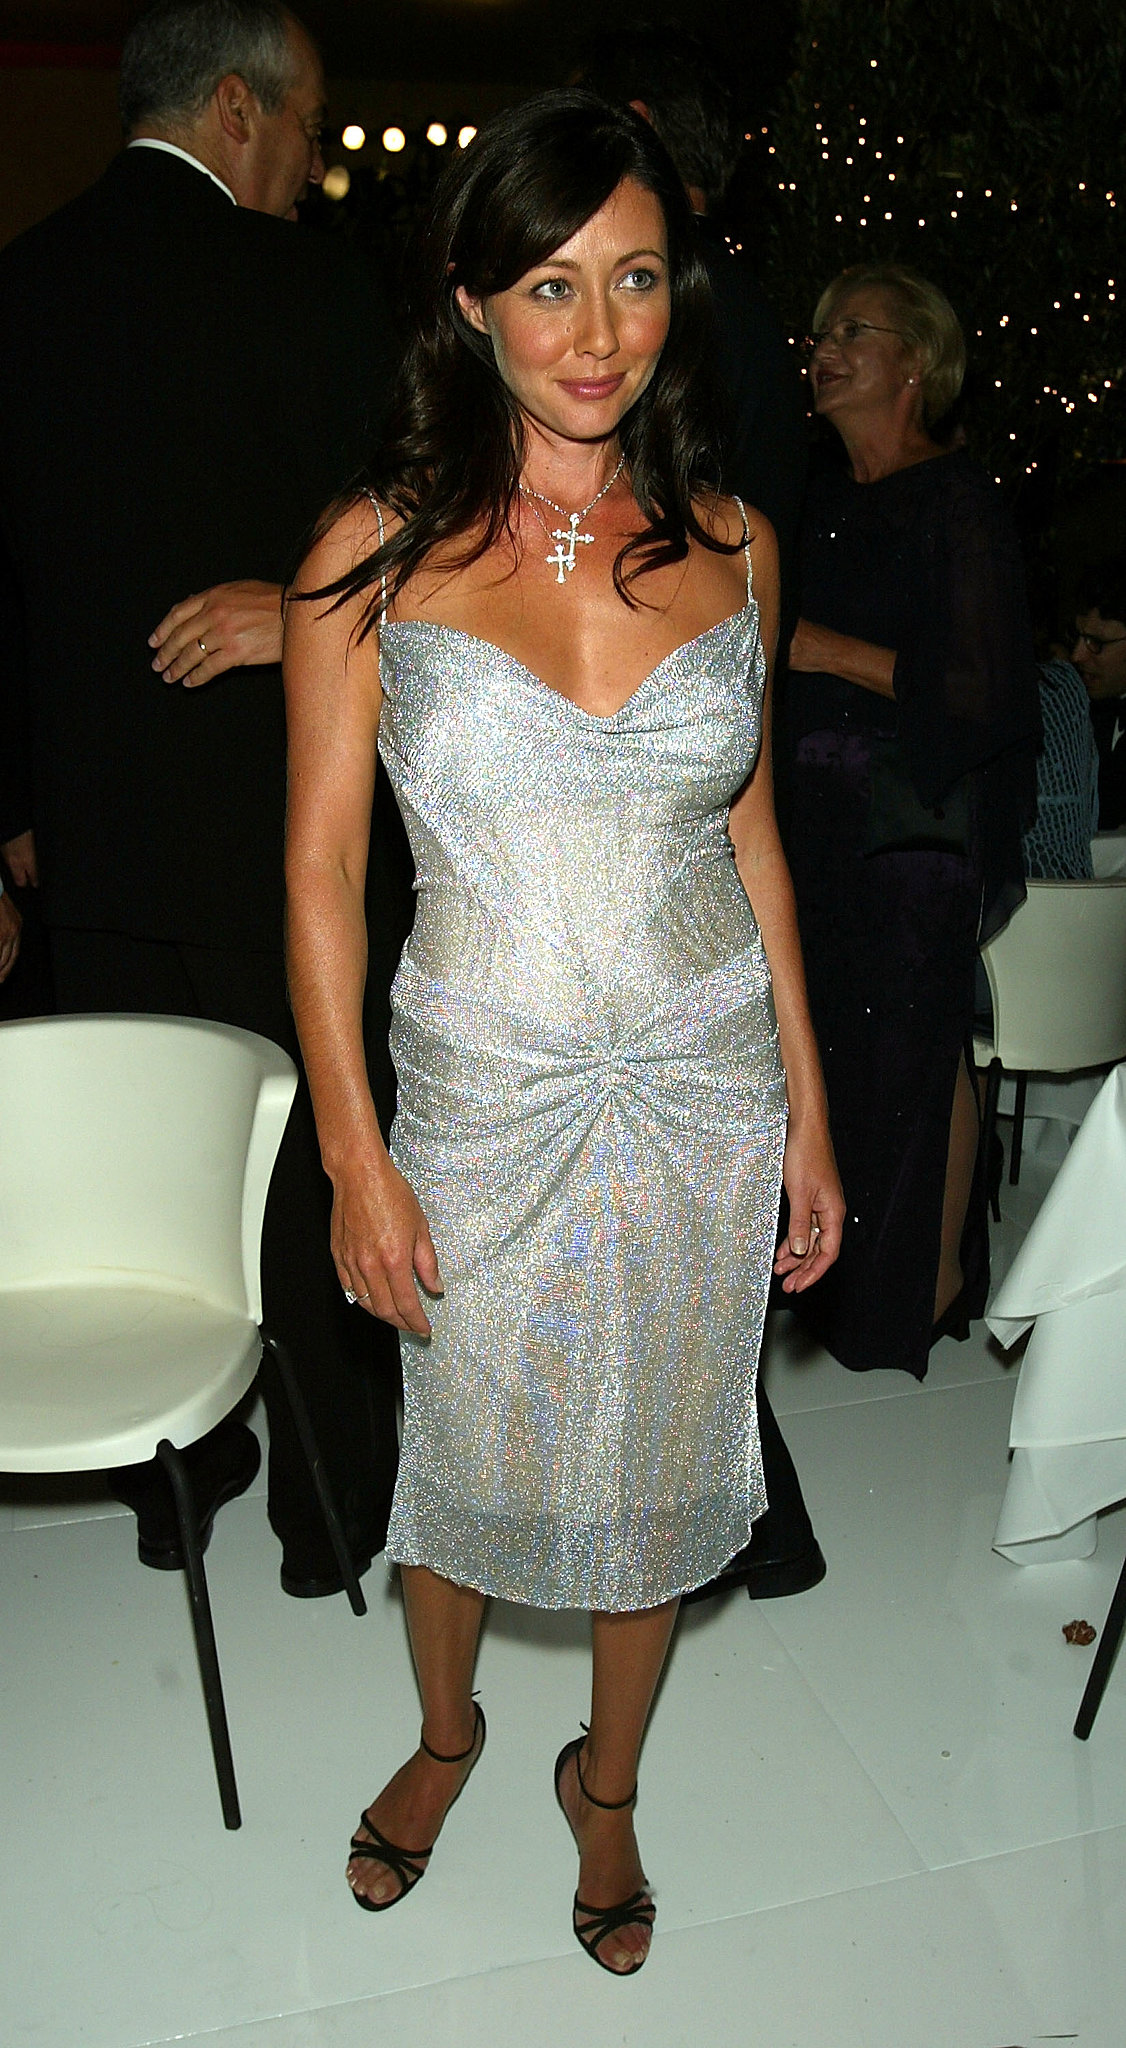 Shannen Doherty partied with pals at a postshow celebration in 2004.